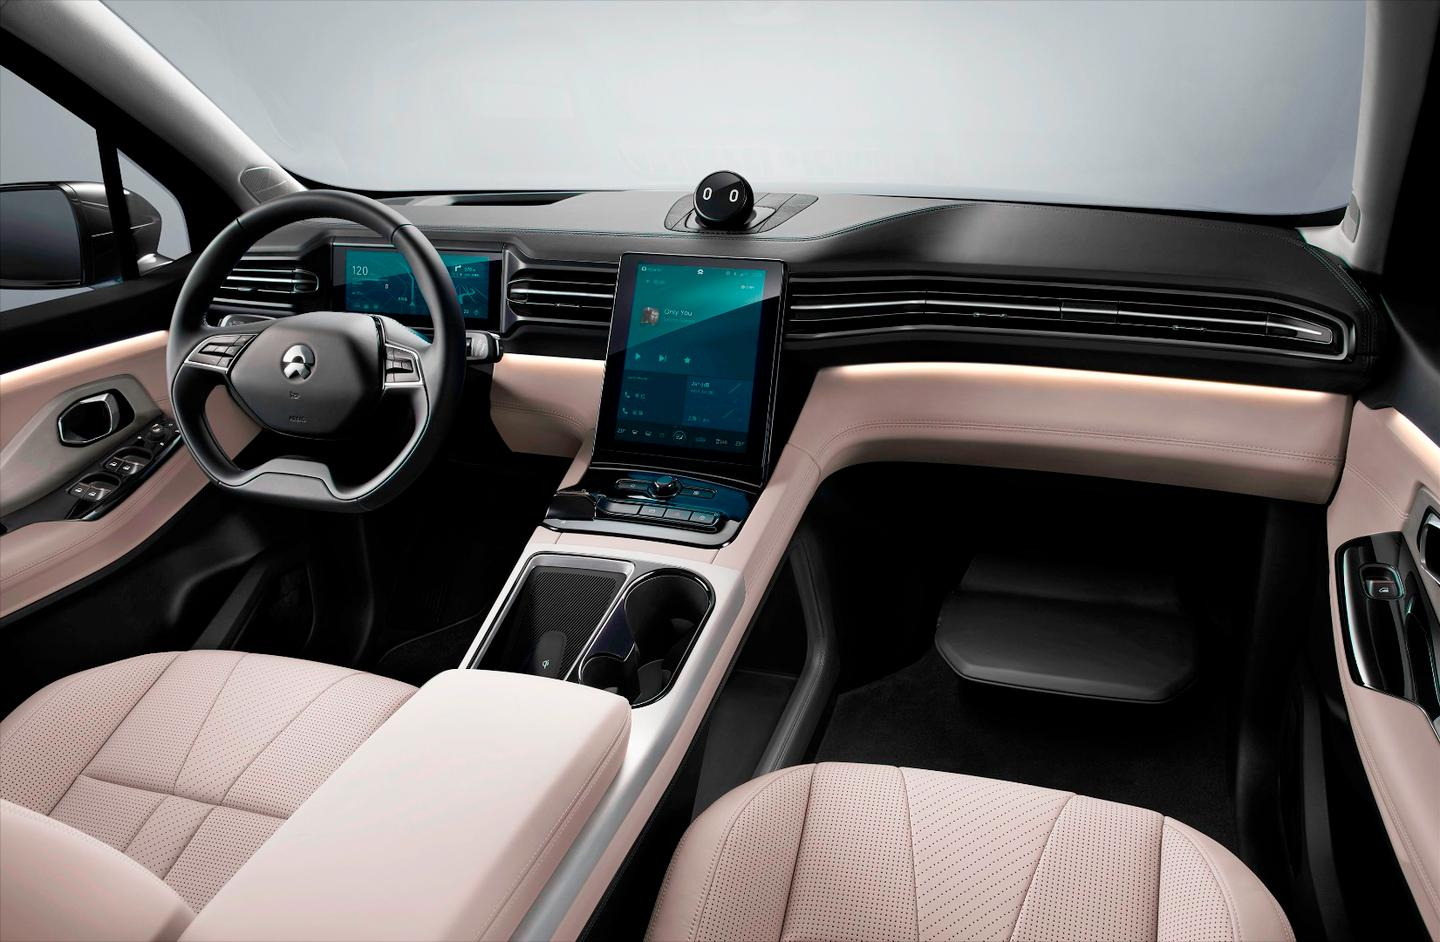 In this lone interior shot for the NIO ES8, we can see a tablet-style infotainment interface dominating the dashboard